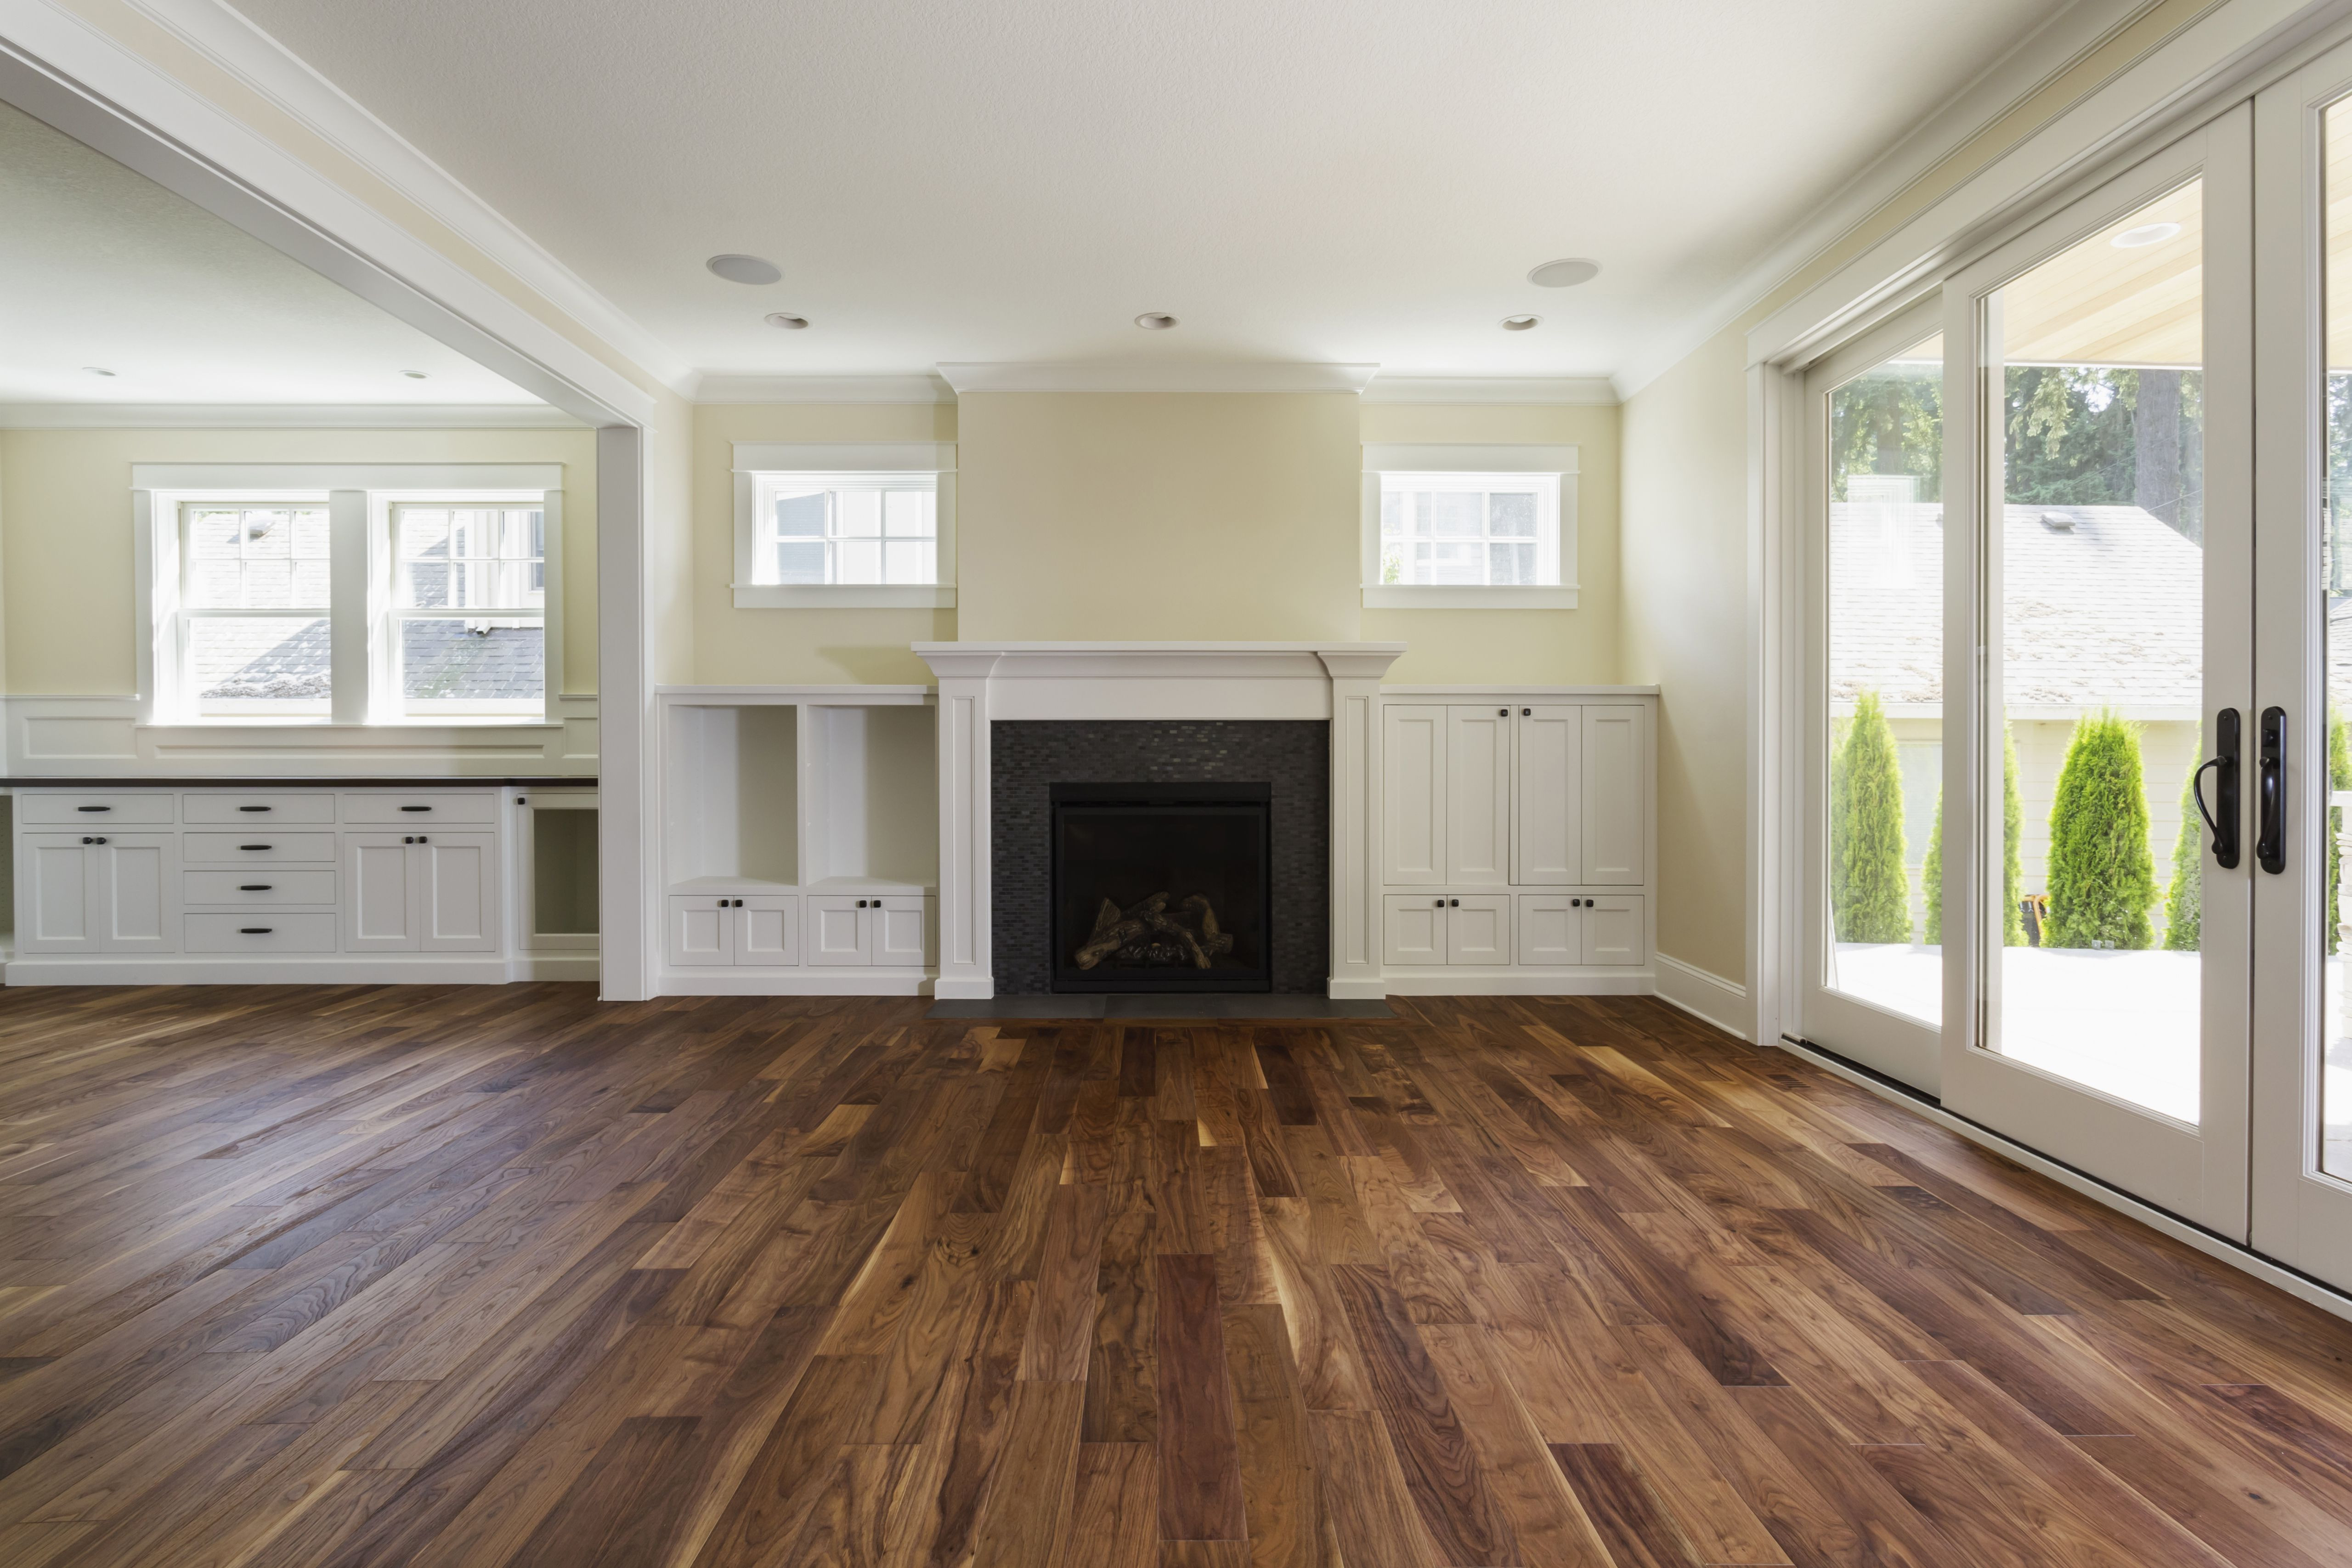 how do i clean engineered hardwood floors of the pros and cons of prefinished hardwood flooring for fireplace and built in shelves in living room 482143011 57bef8e33df78cc16e035397